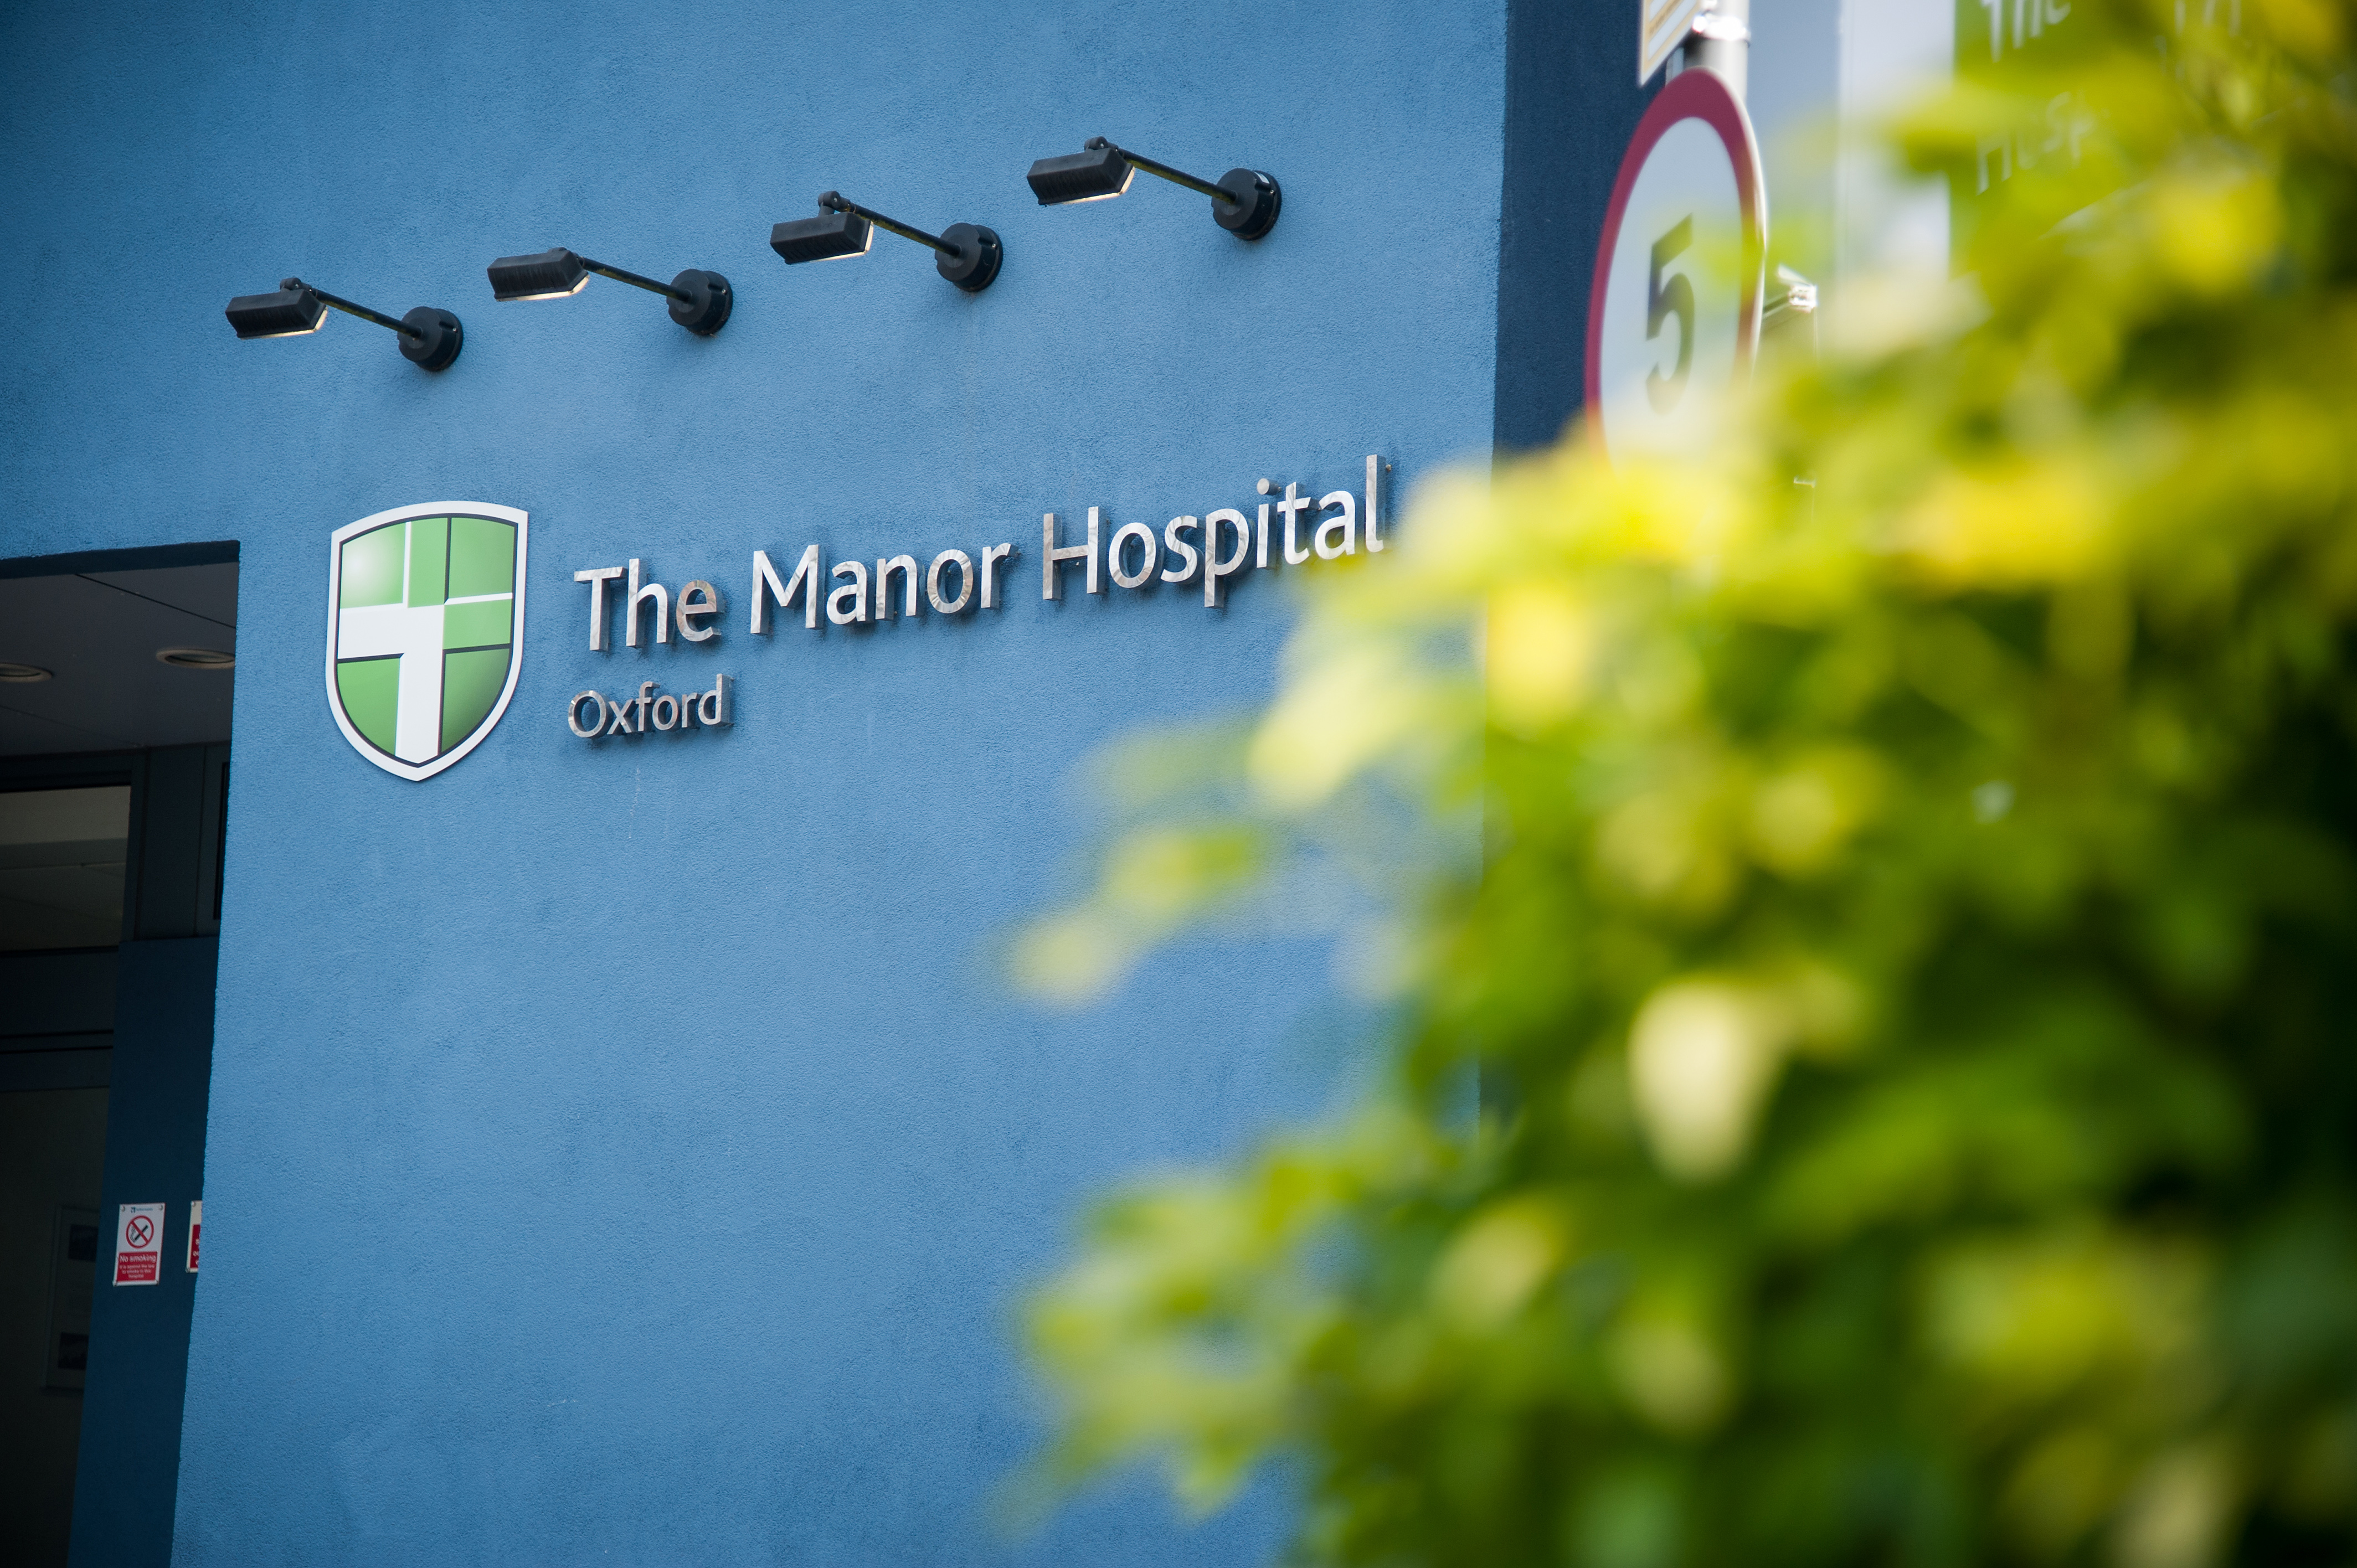 Manor_Hospital_by_John_Cairns_13.2.14-10